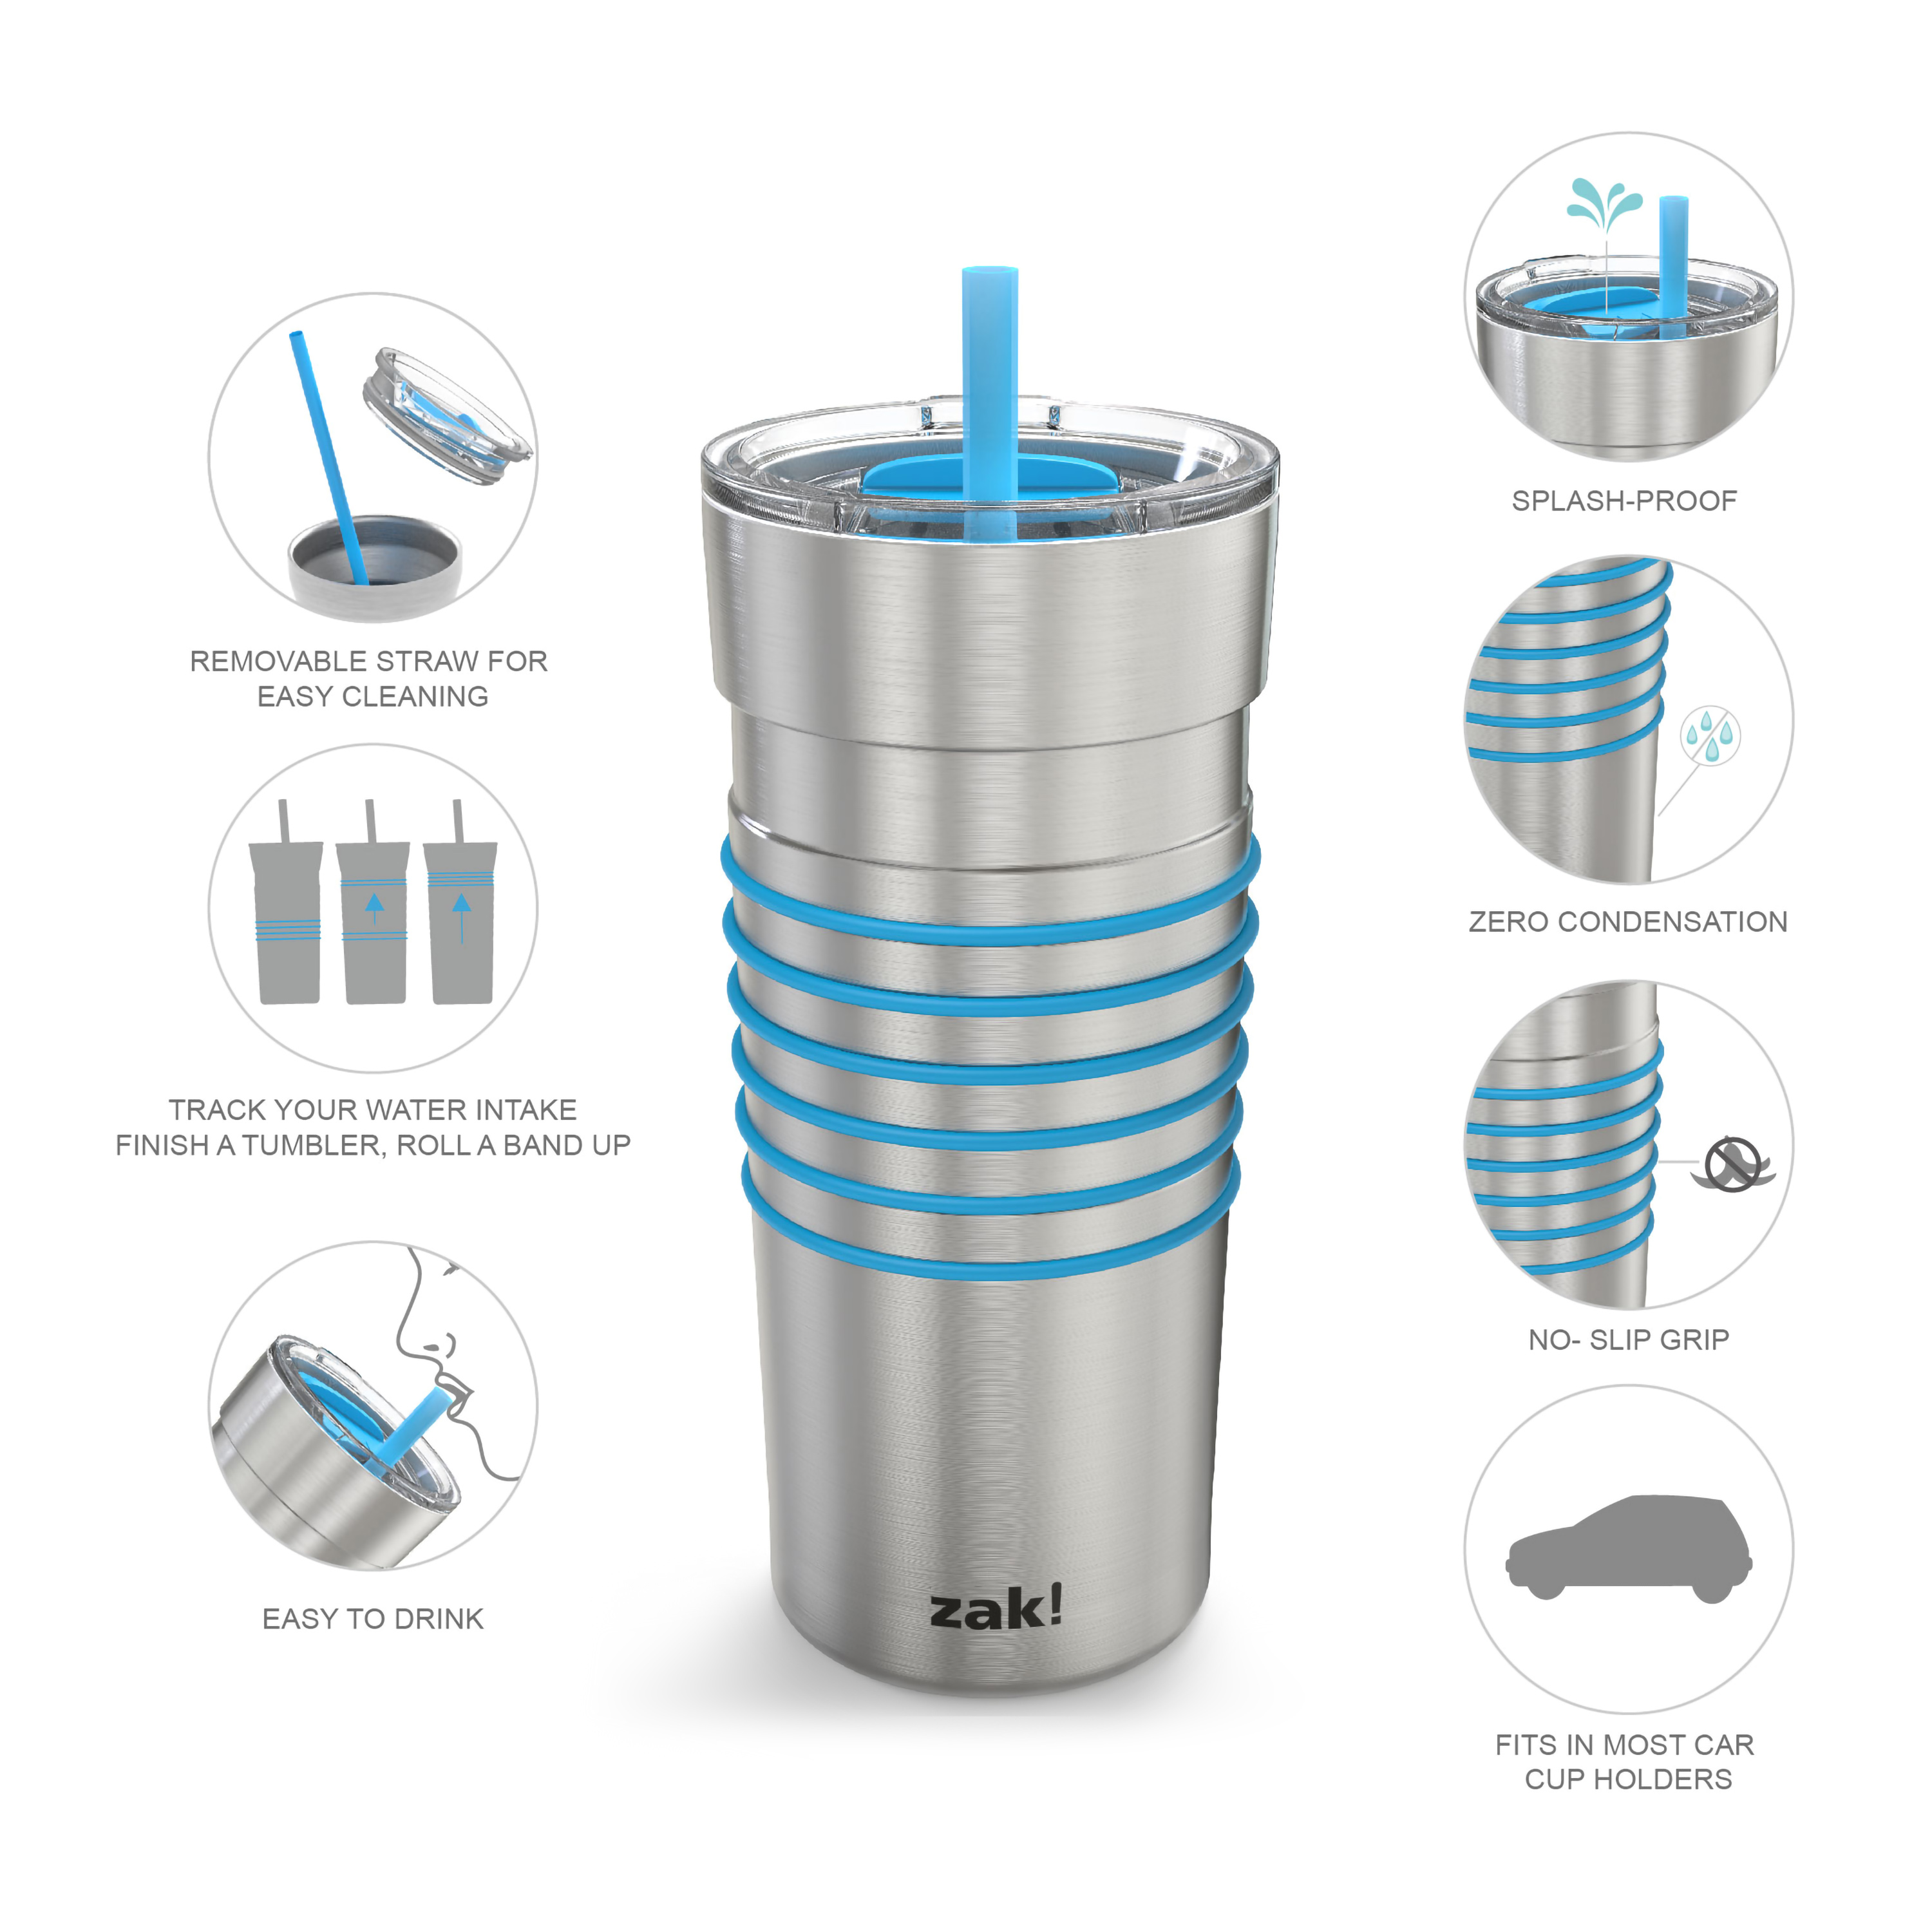 HydraTrak 20 ounce Vacuum Insulated Stainless Steel Tumbler, Stainless Steel with Blue Rings slideshow image 3